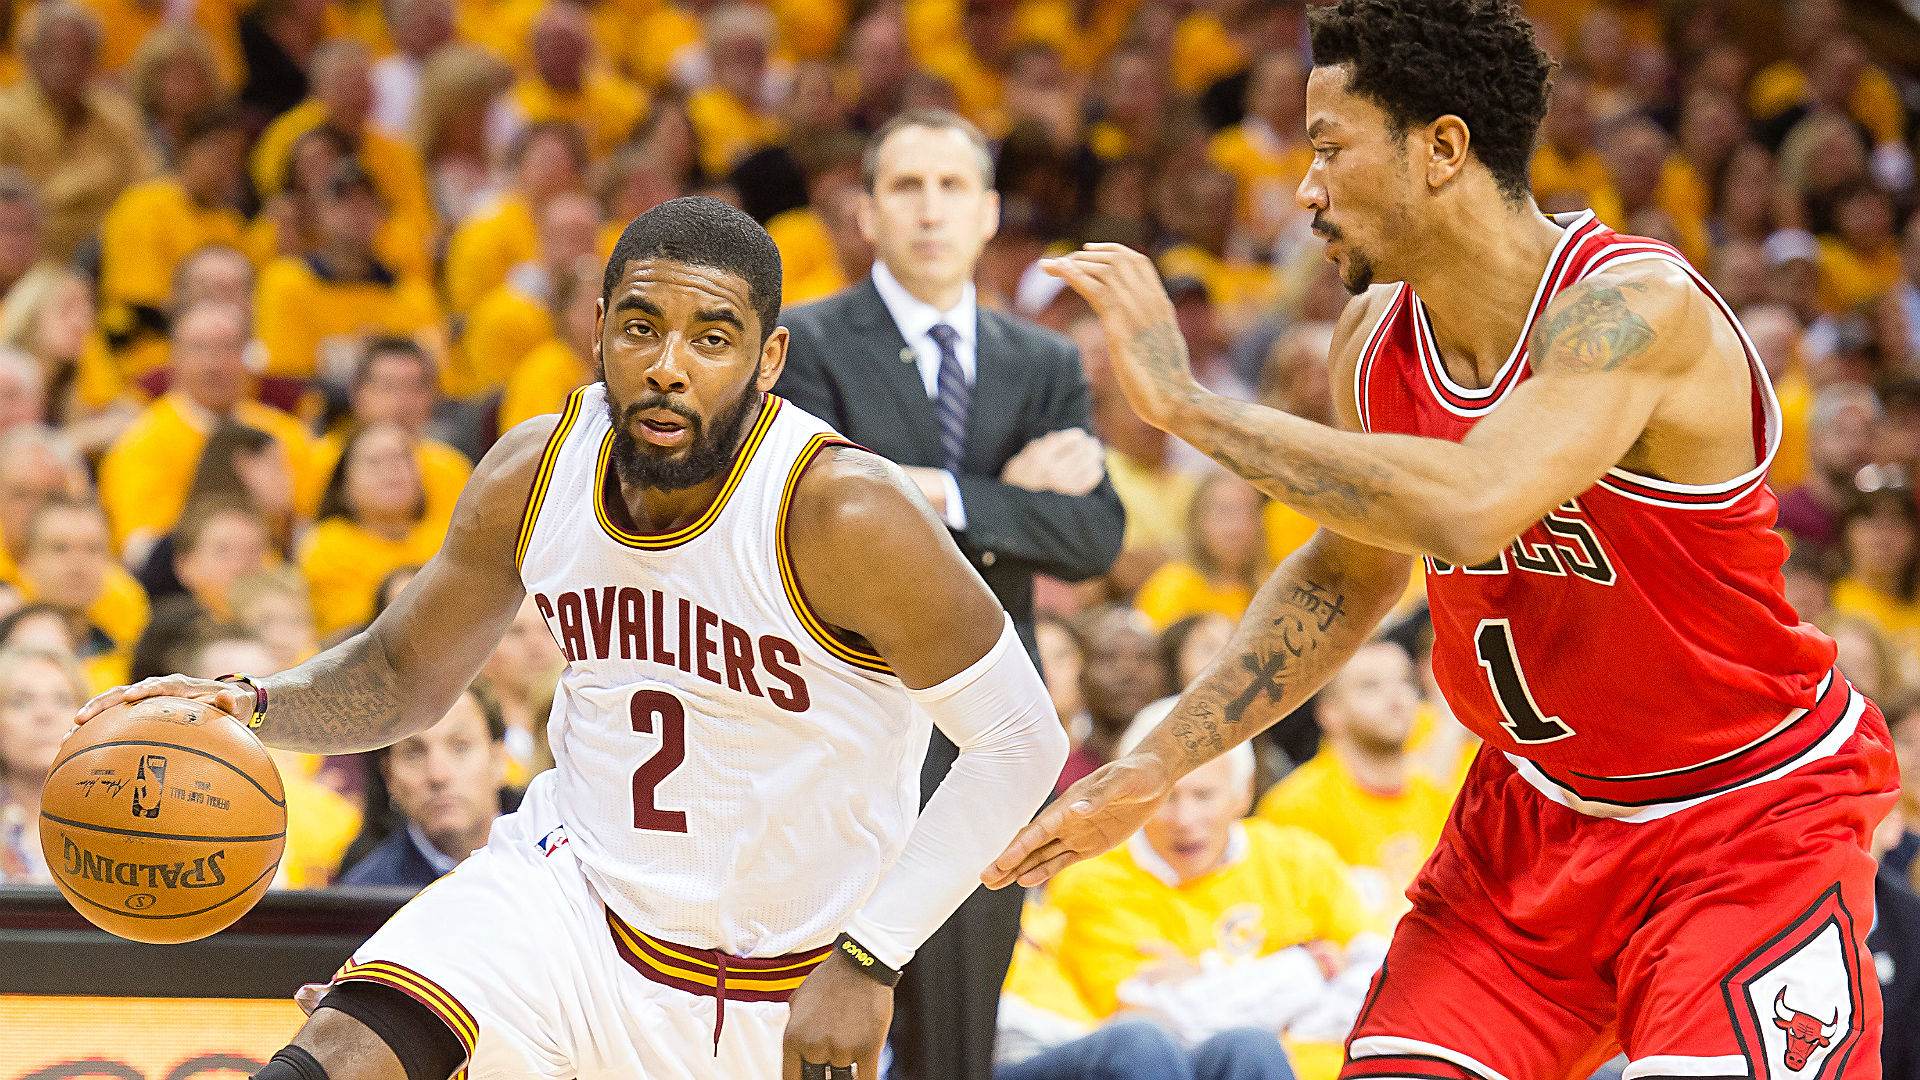 NBA Playoffs lines and picks - Cavaliers, Rockets in early desperate situations